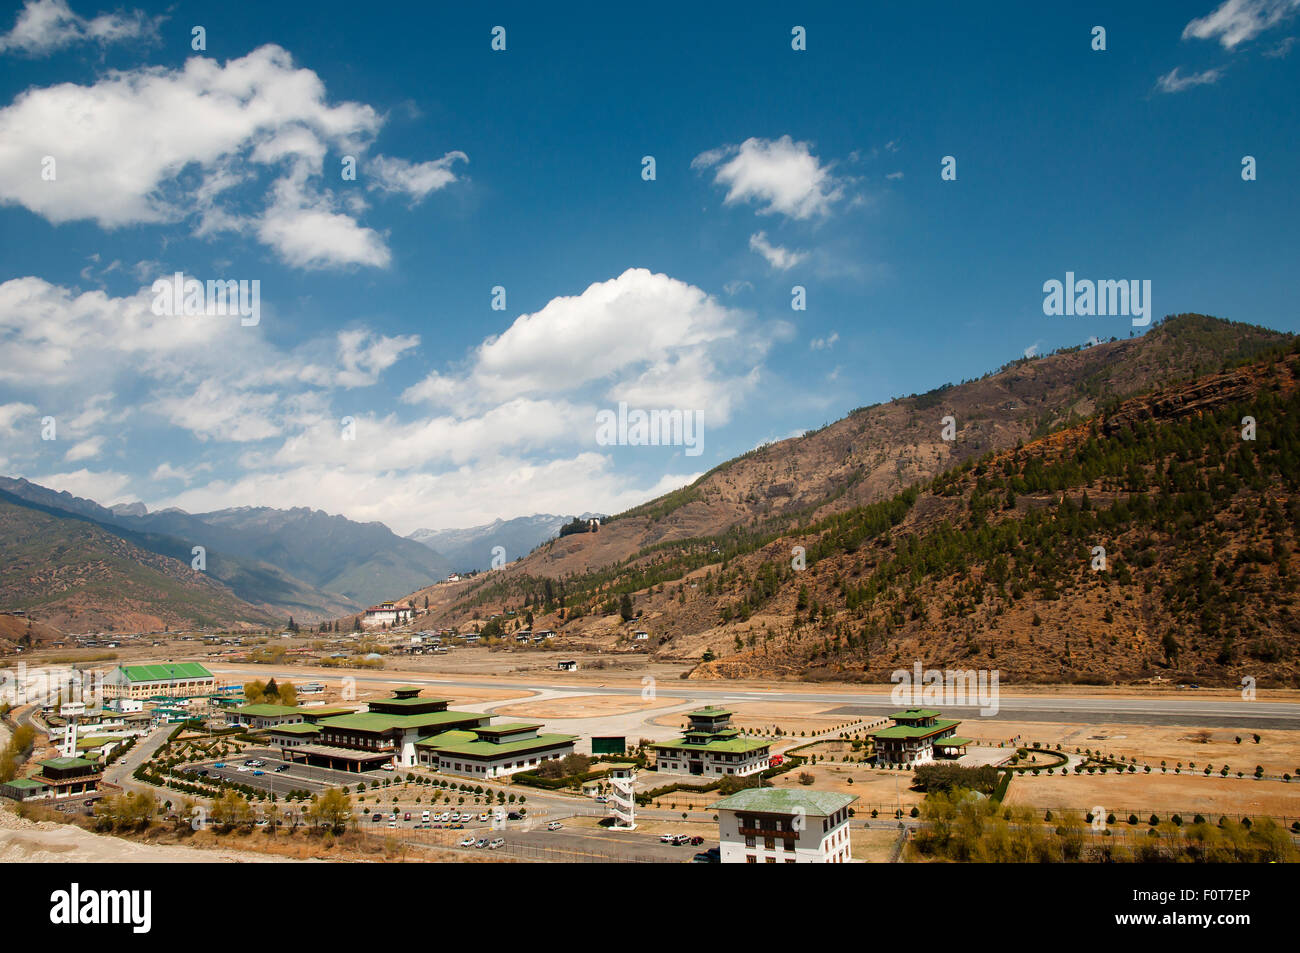 Paro Airport in the Mountains - Bhutan - Stock Image